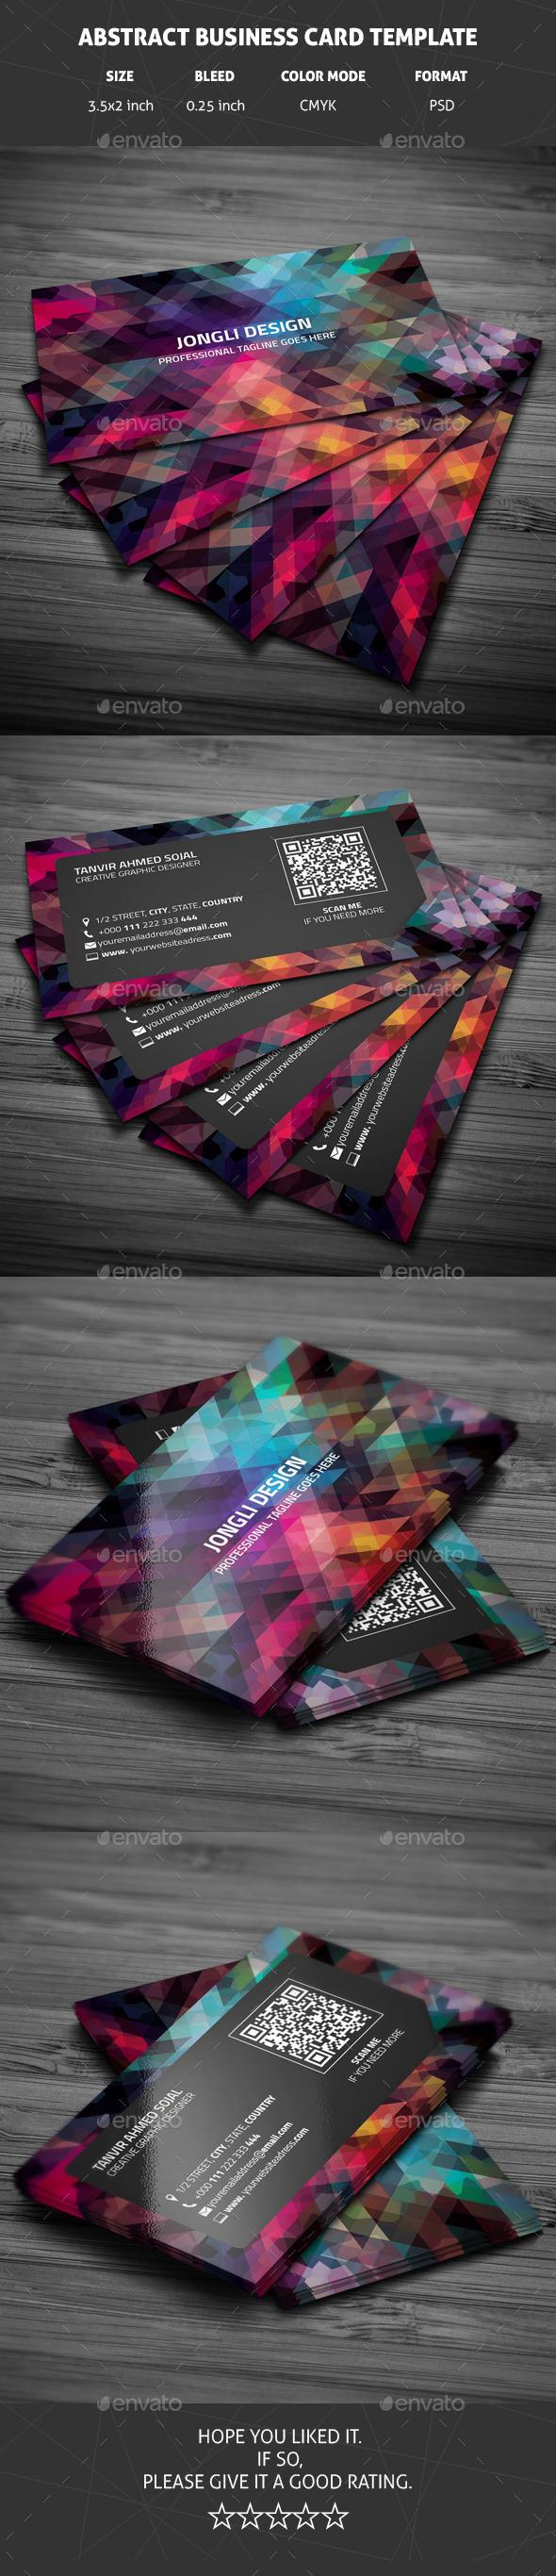 Abstract Business Card Template  #template #creative #business